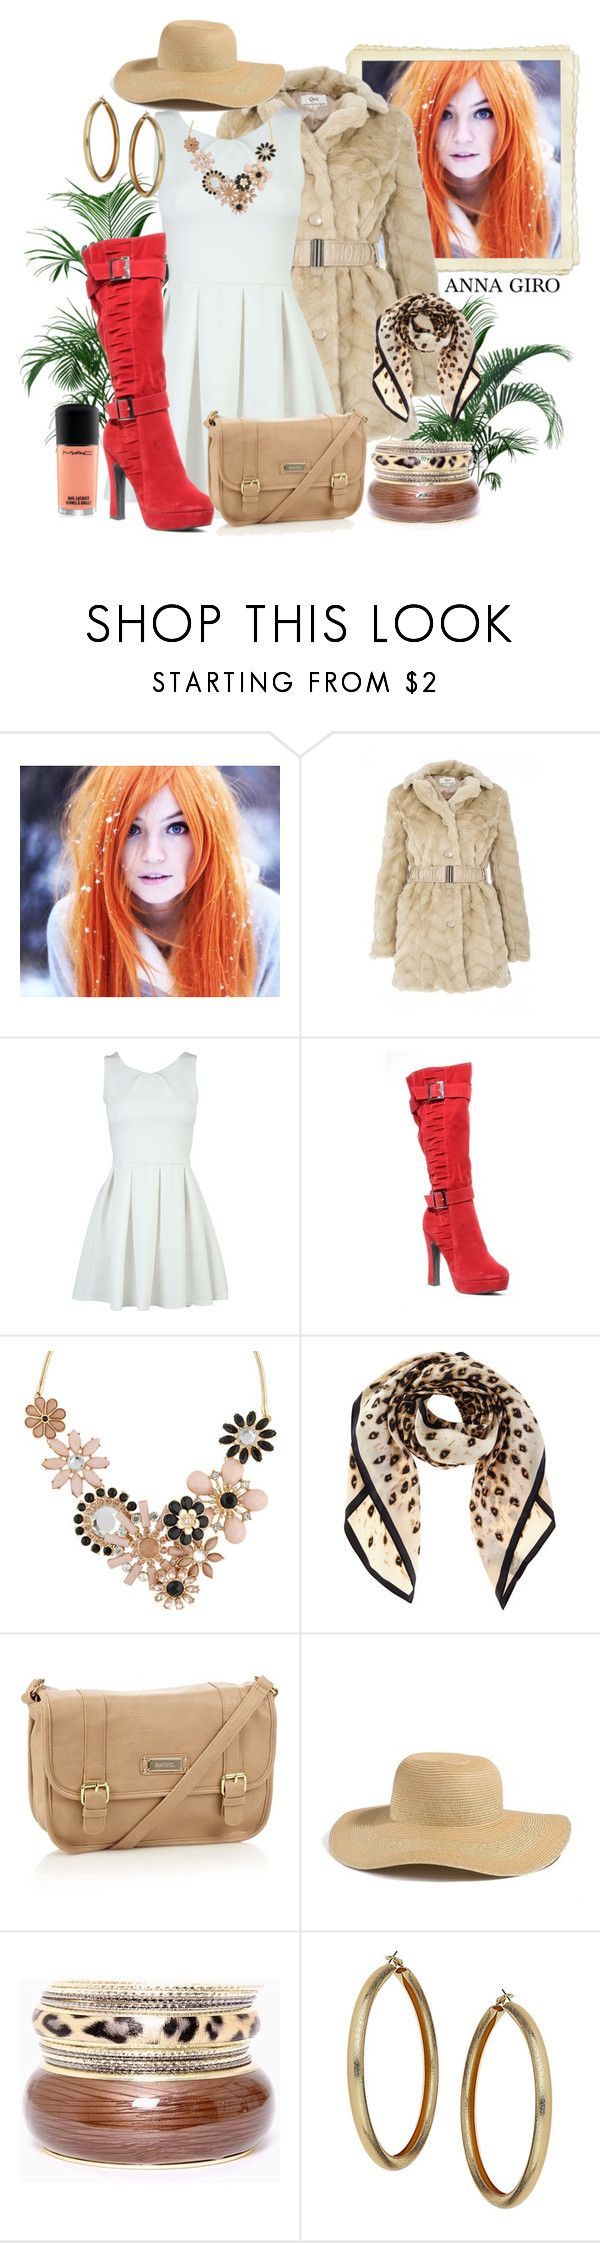 """""""Cheap & Chic Fall Look"""" by annagiro ❤ liked on Polyvore featuring Quiz, ALDO, Oasis, kangol, GUESS and Topshop"""